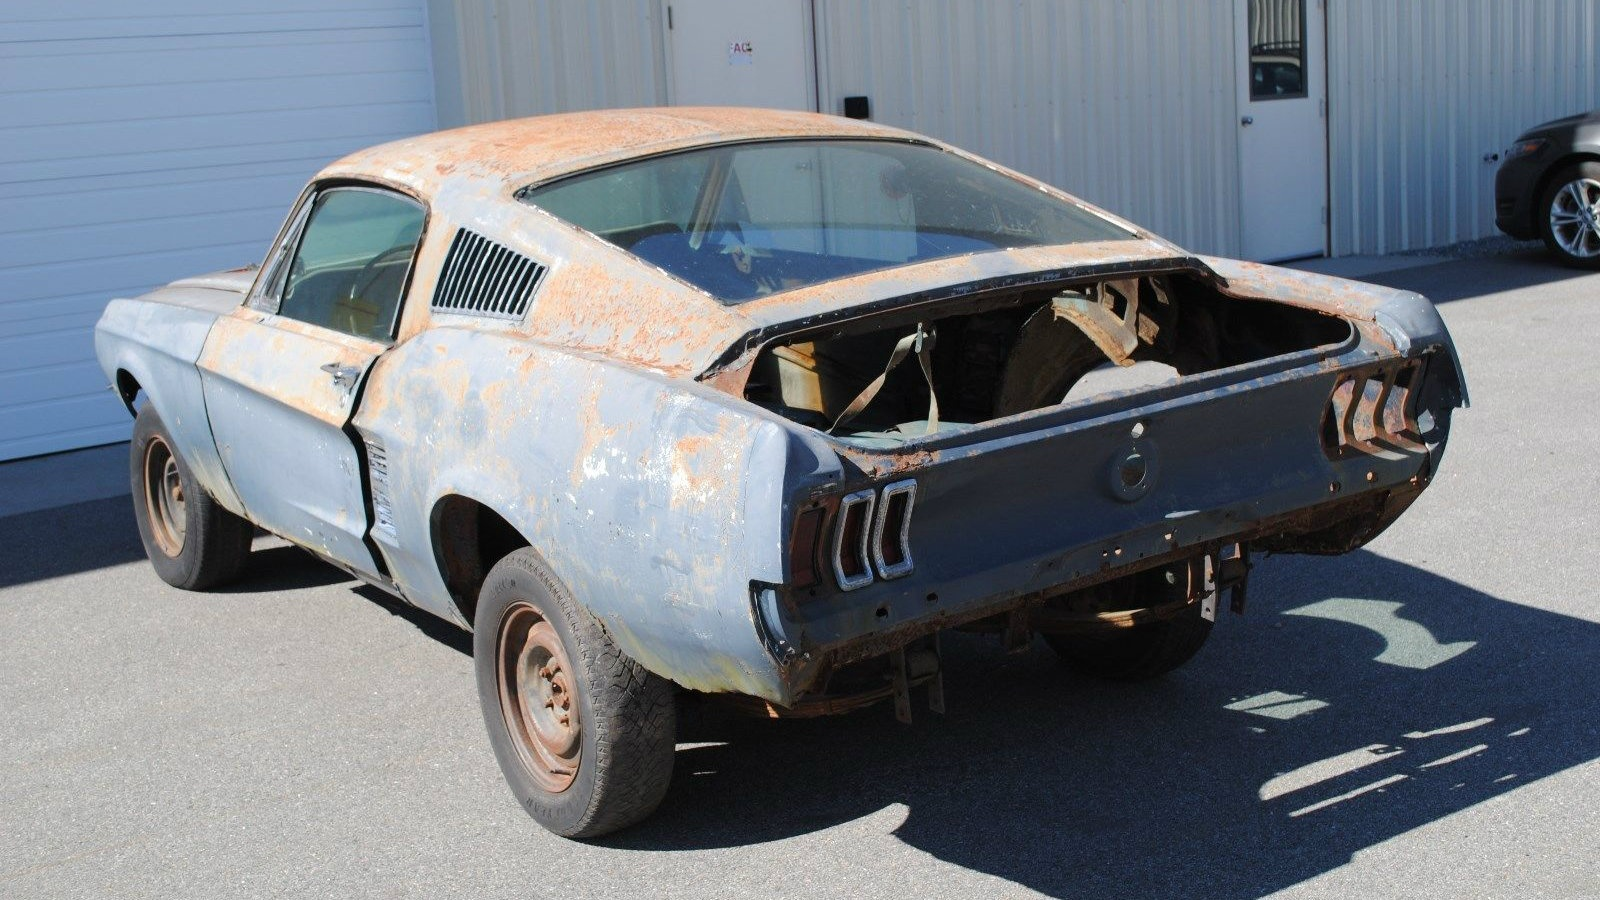 Pushes & Steers: 1967 Ford Mustang